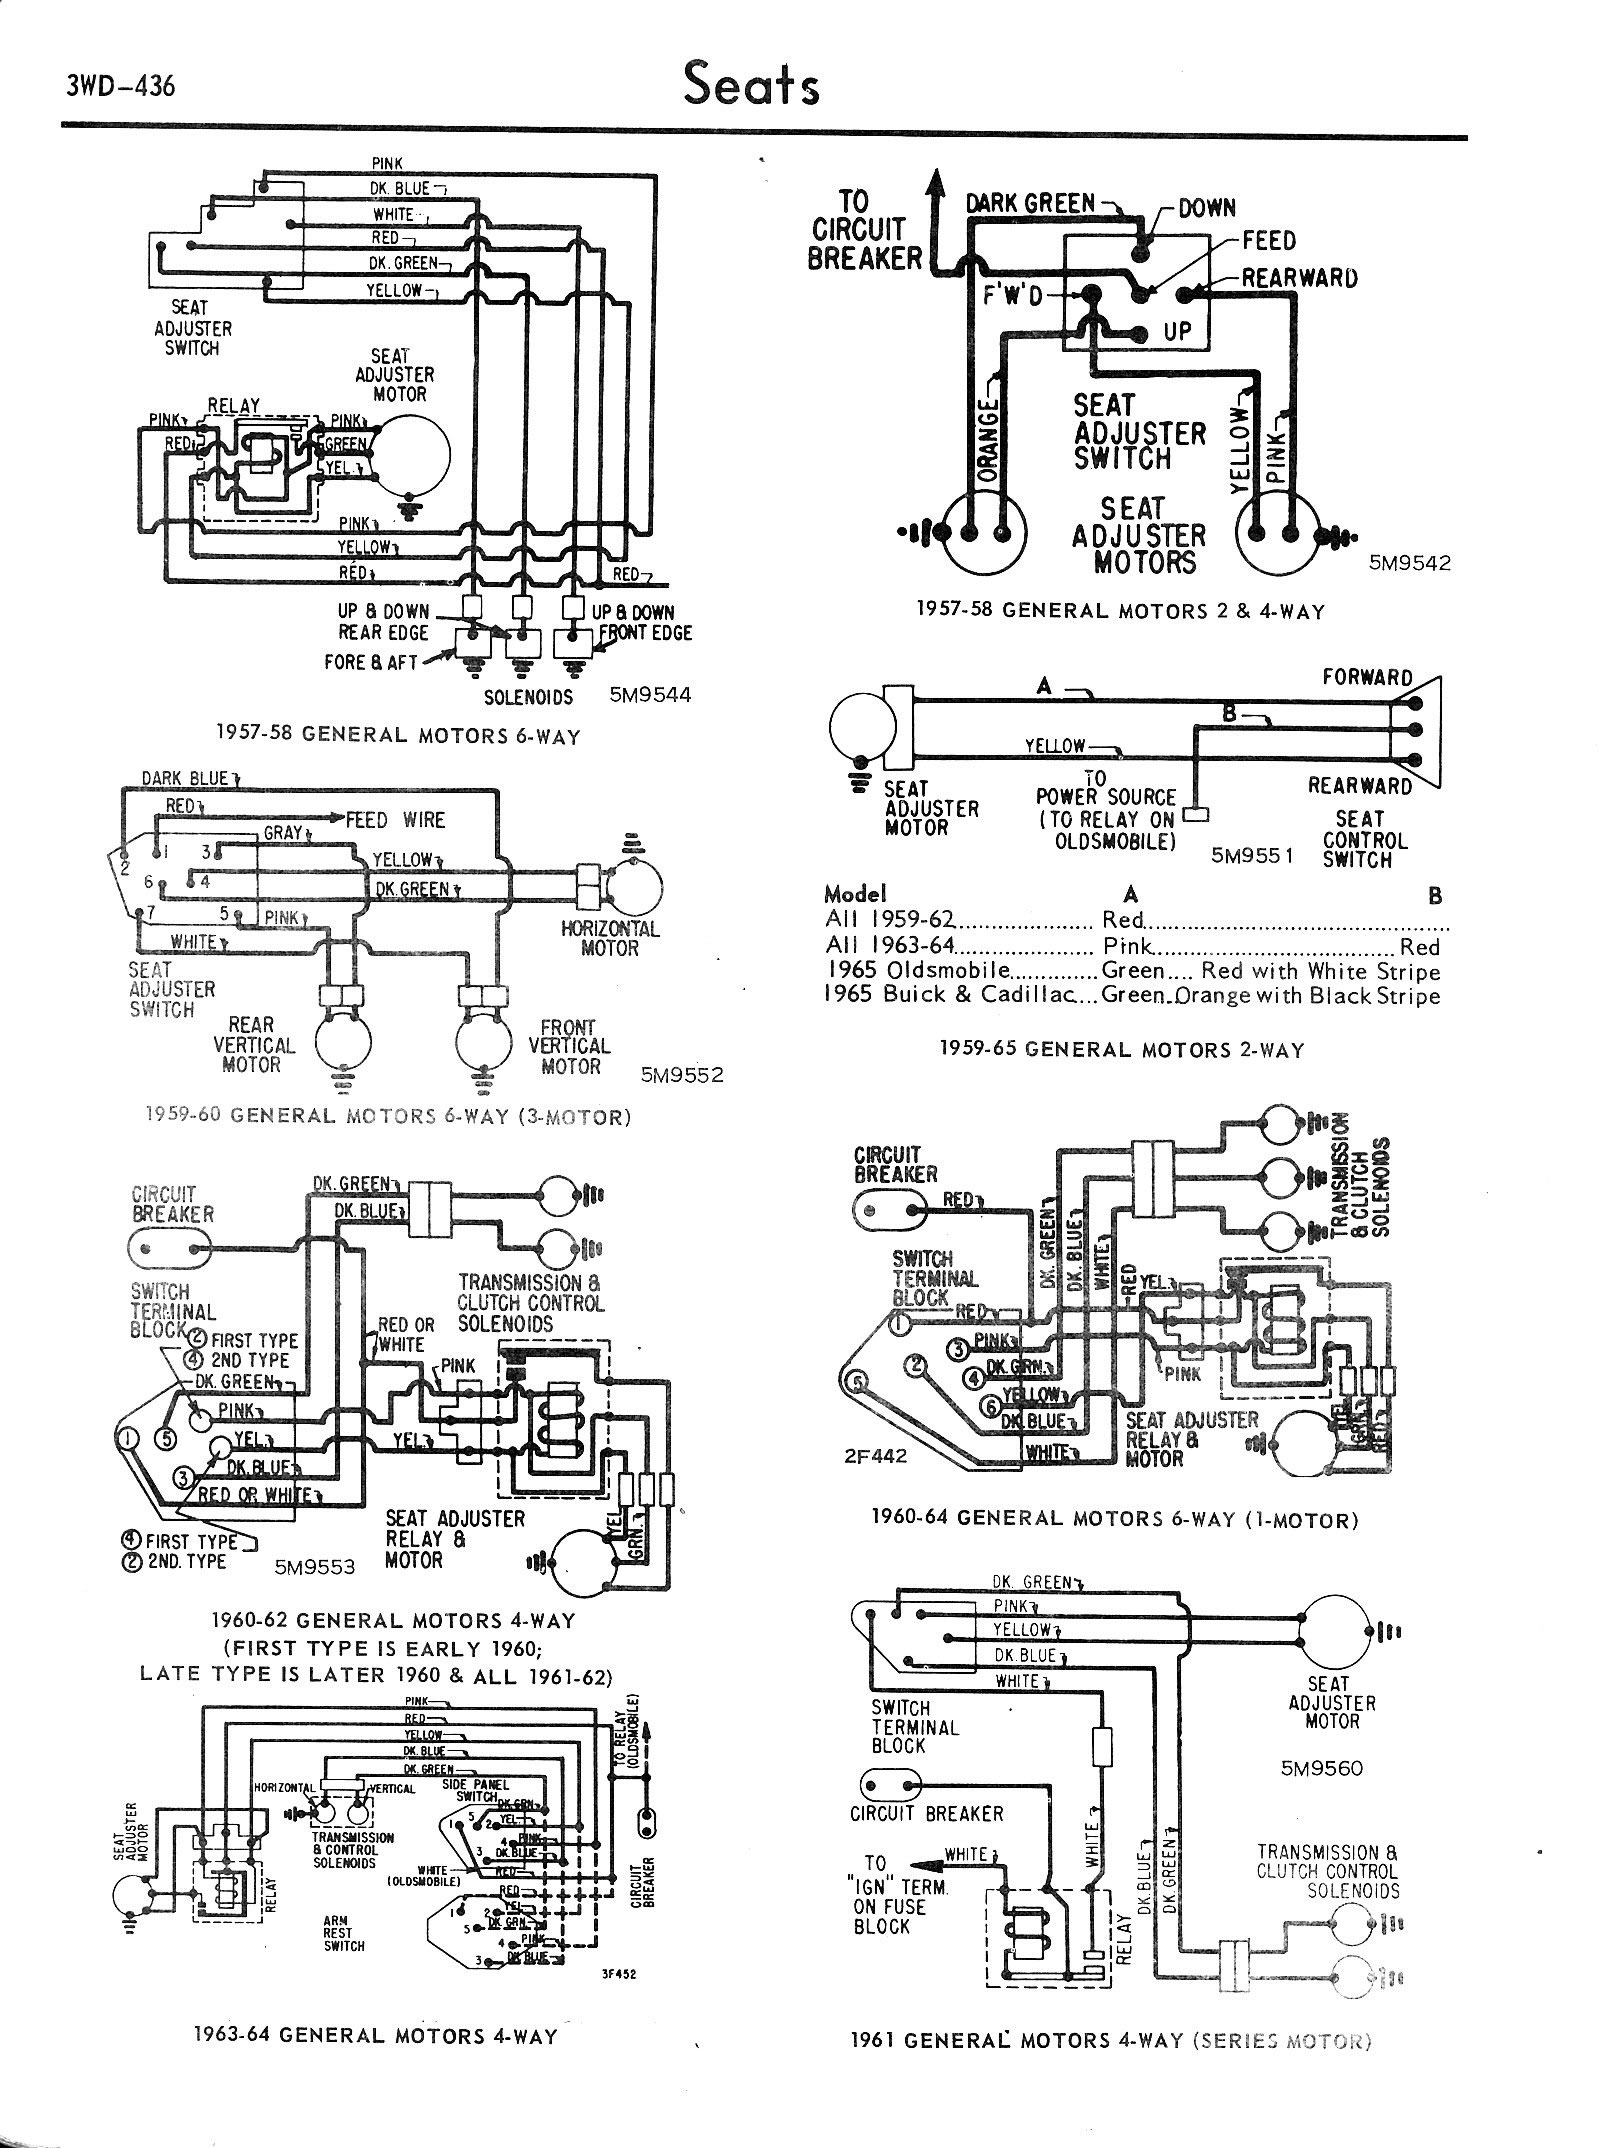 chevy diagrams c 57 64 gm a mix of 2 way 4 way 6 way